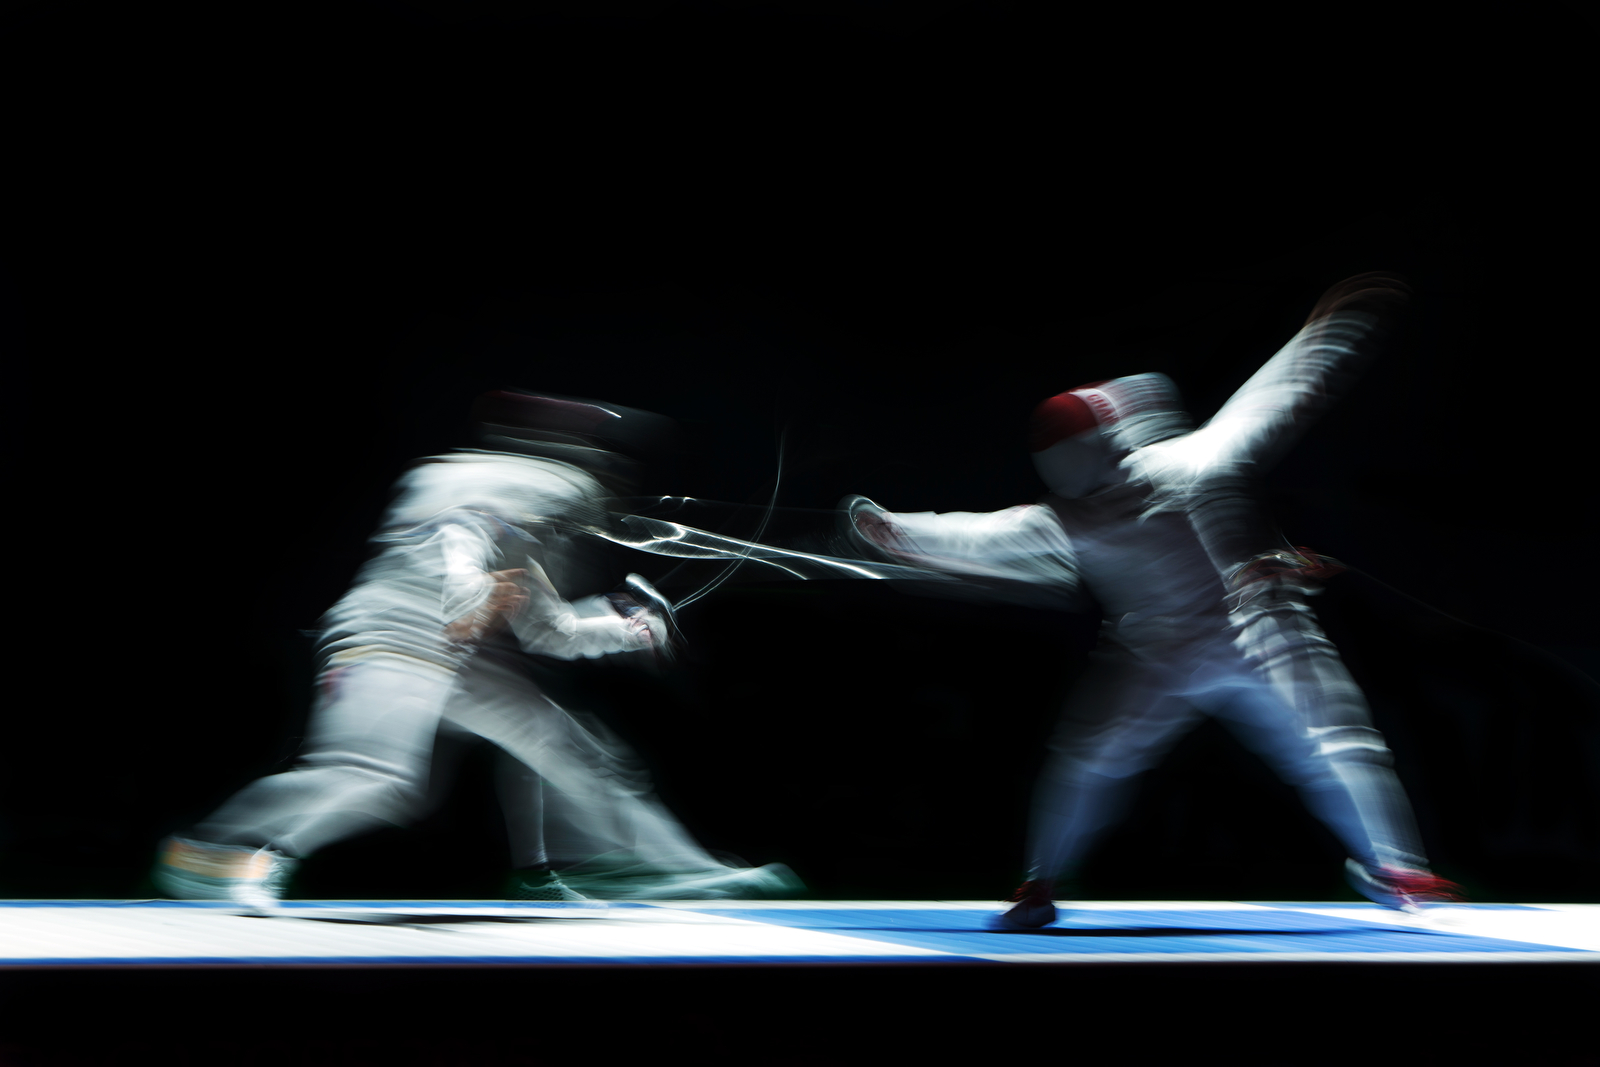 Kevin Jerrold Chan (R) of Singapore in action against Wilfred Richard Curioso of the Philippines during the men's team foil finals of the fencing competition at the 28th Southeast Asian Games at the OCBC Arena on June 7, 2015 in Singapore.